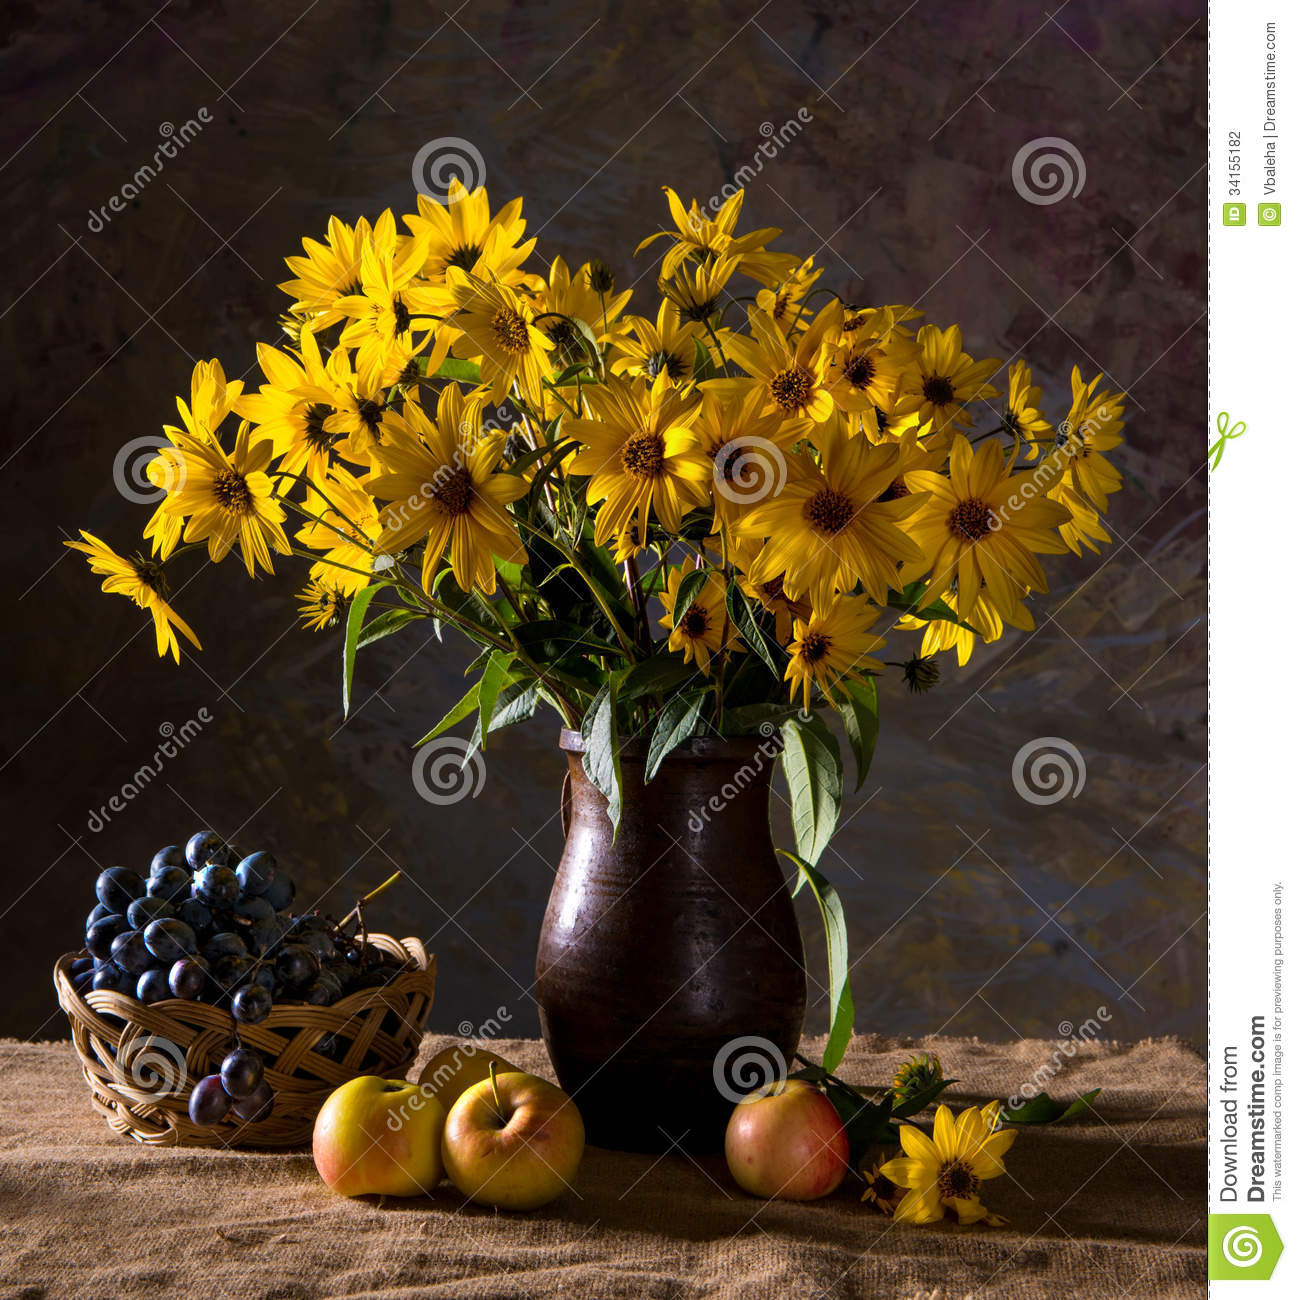 Image Result For A Bright Yellow Garden Flower